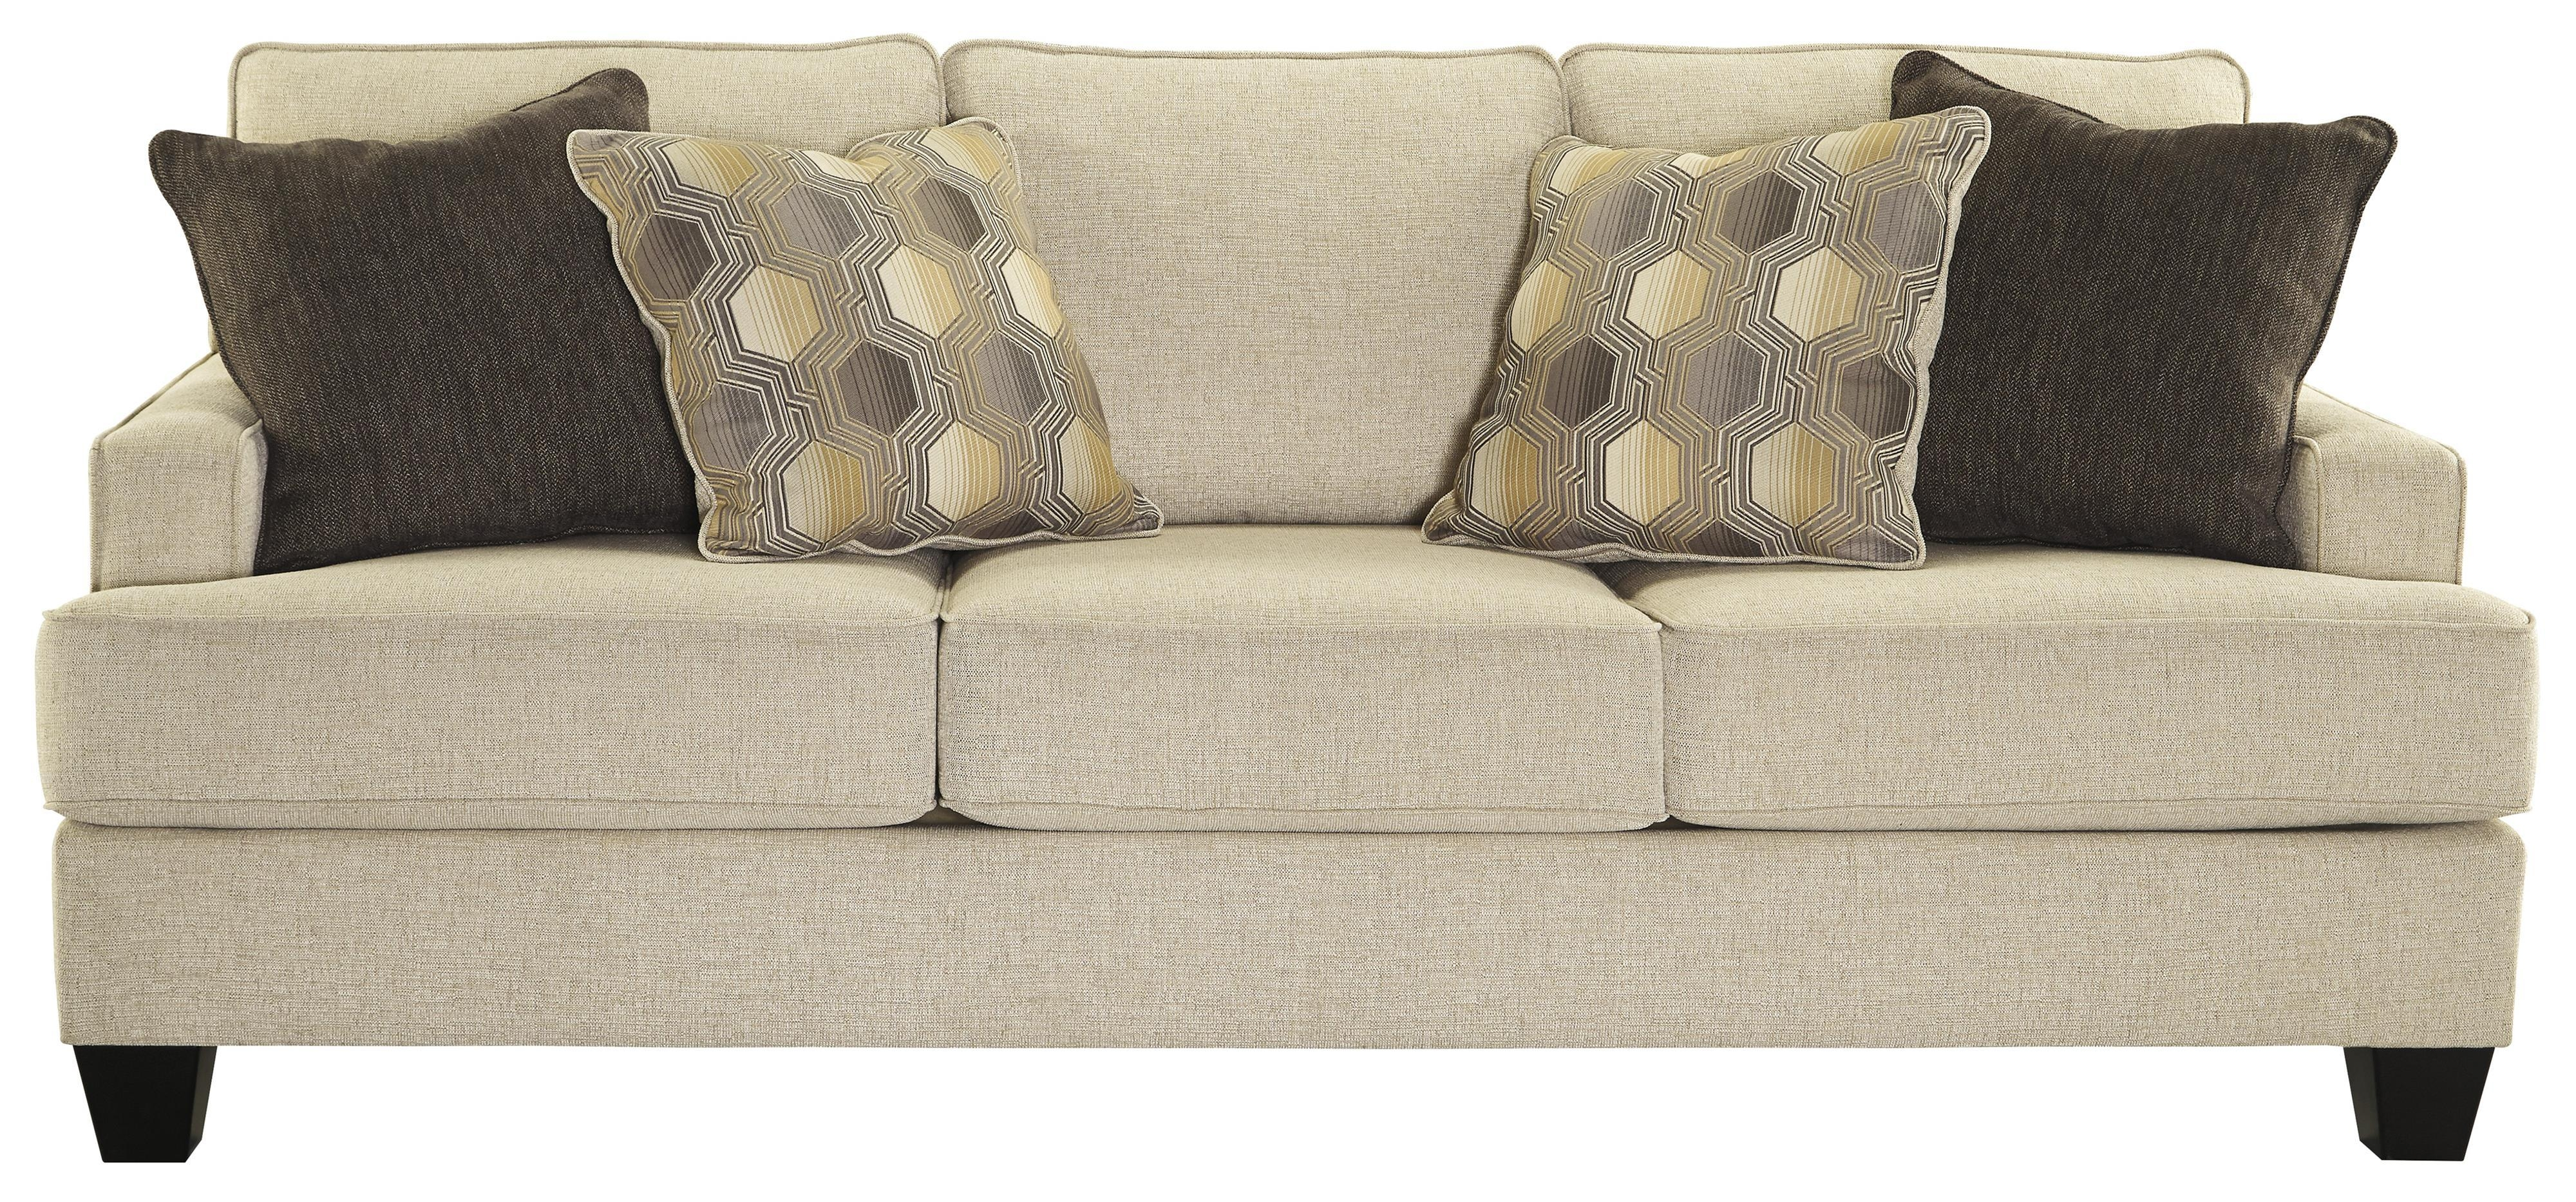 Benchcraft Brielyn Sofa With Track Arms And T Style Seat Cushions Pertaining To Benchcraft Leather Sofas (Image 4 of 20)